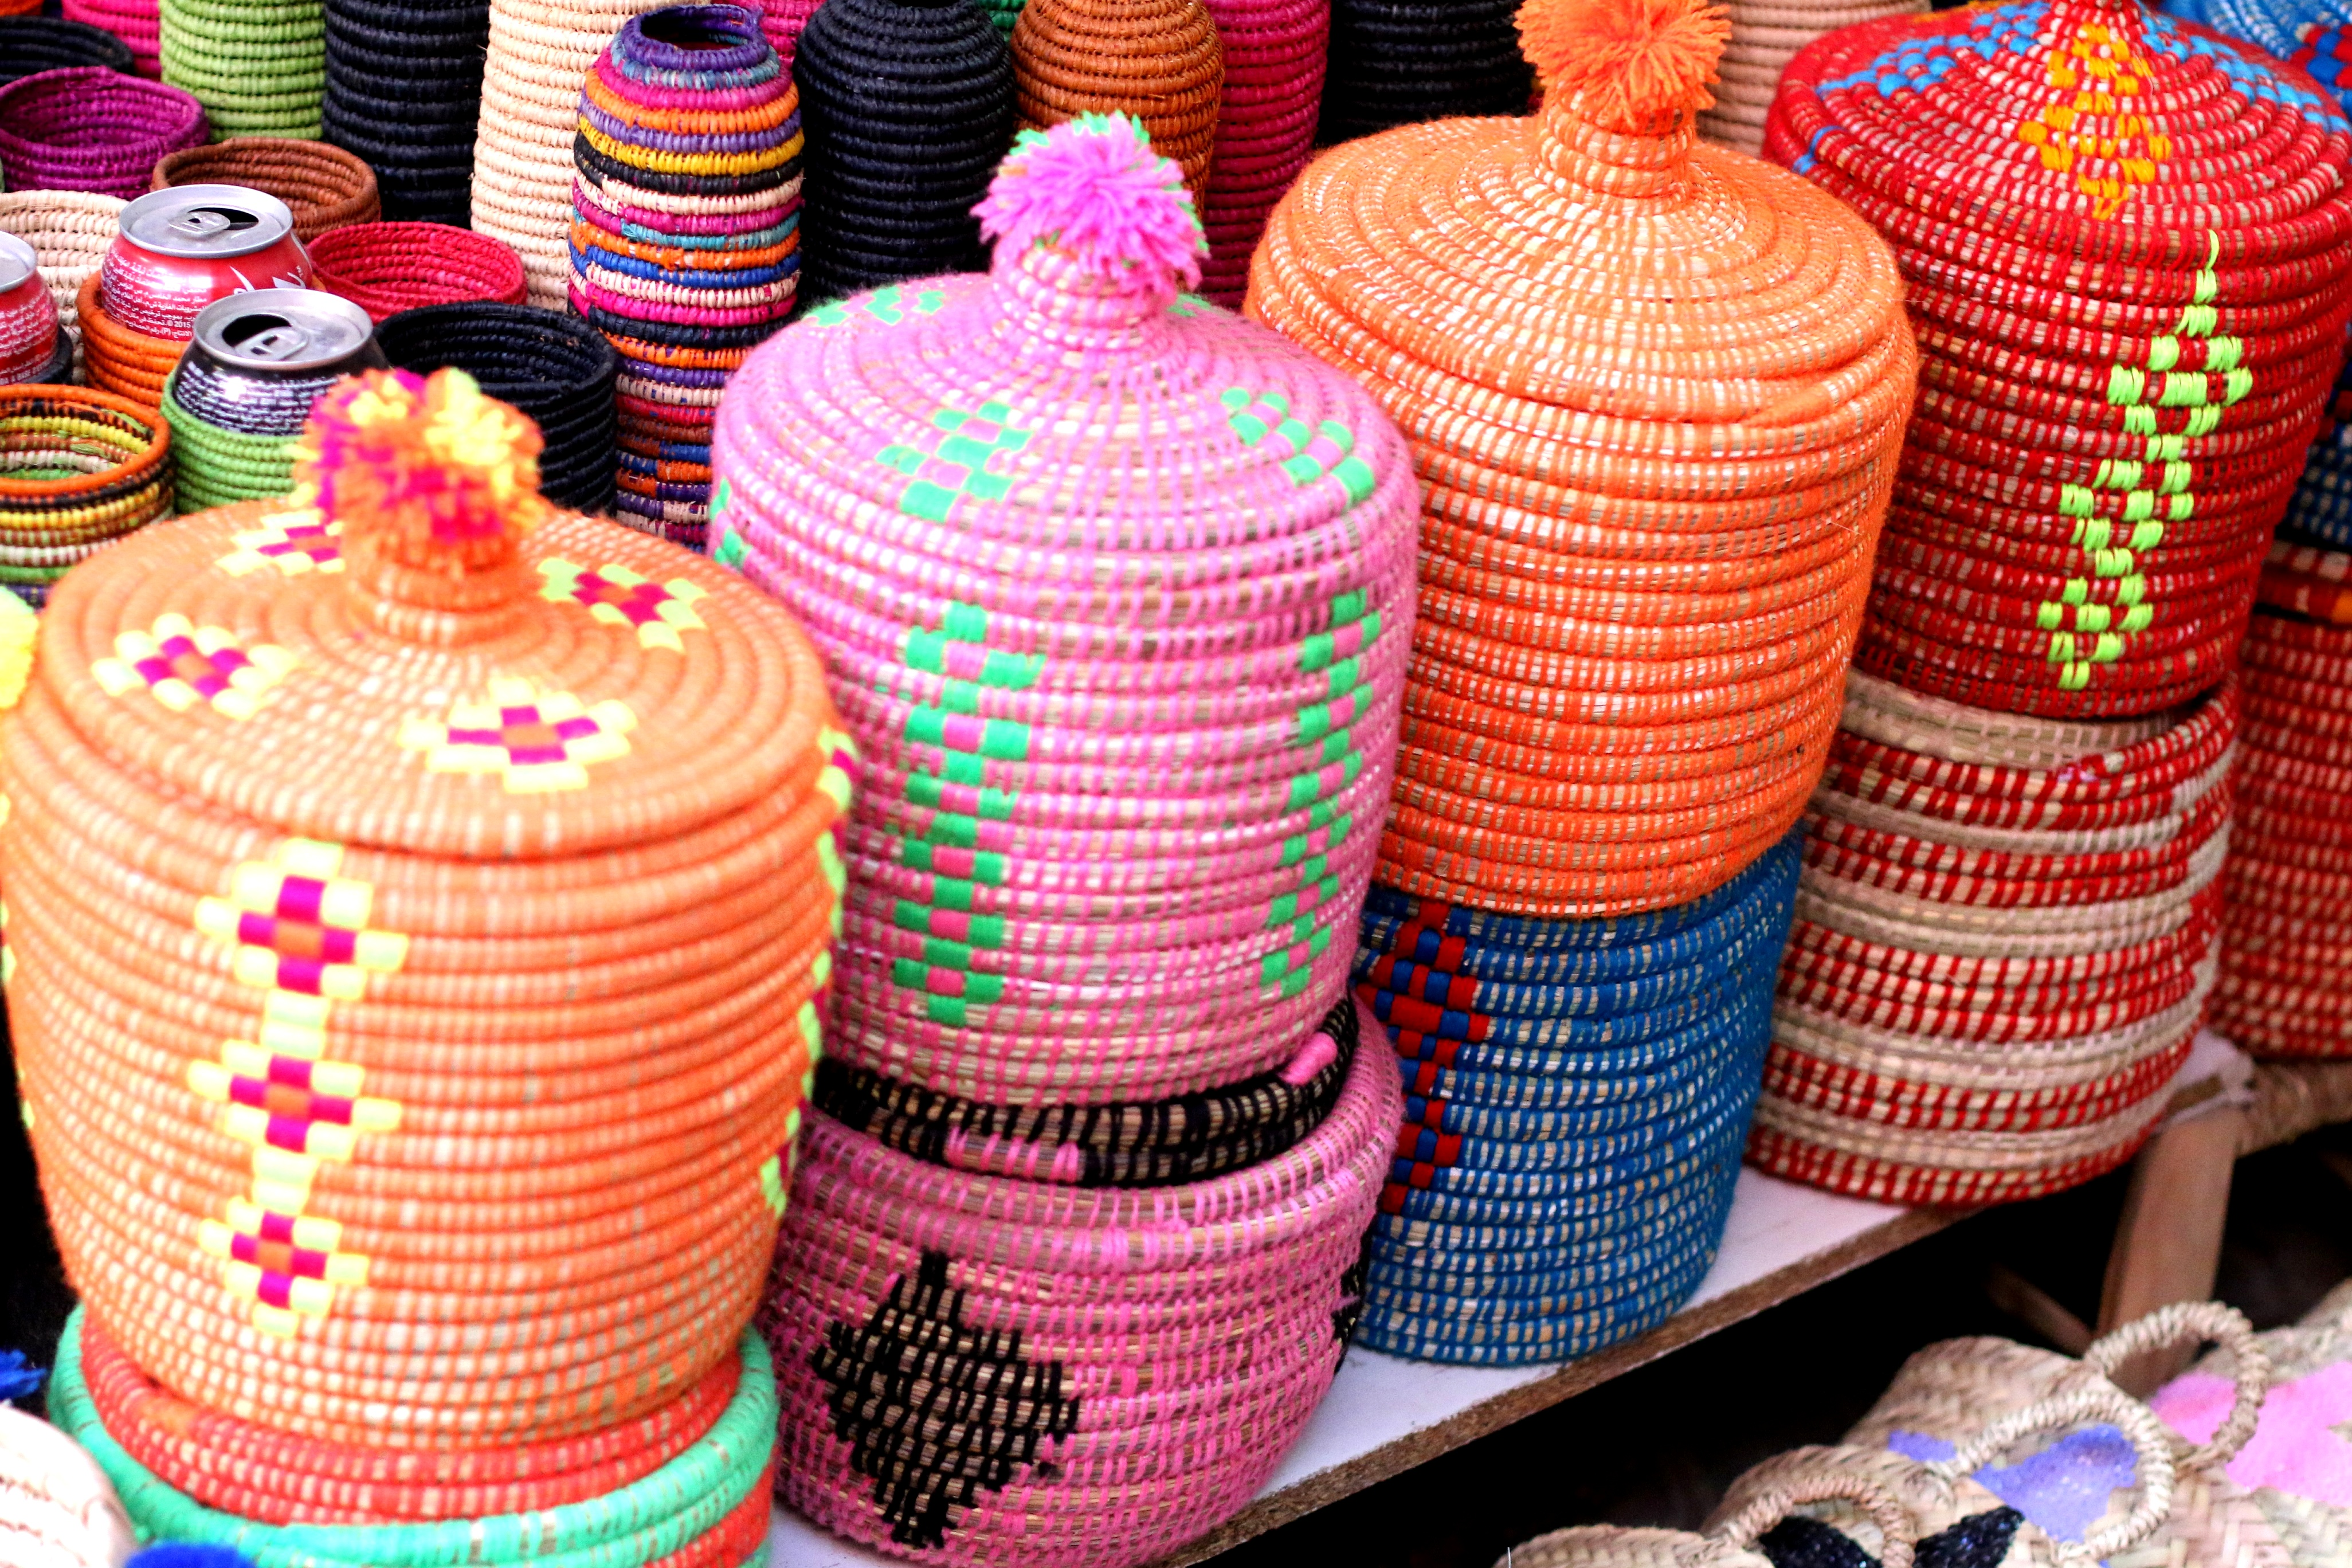 marrakech travel guide marrakesch reiseblog